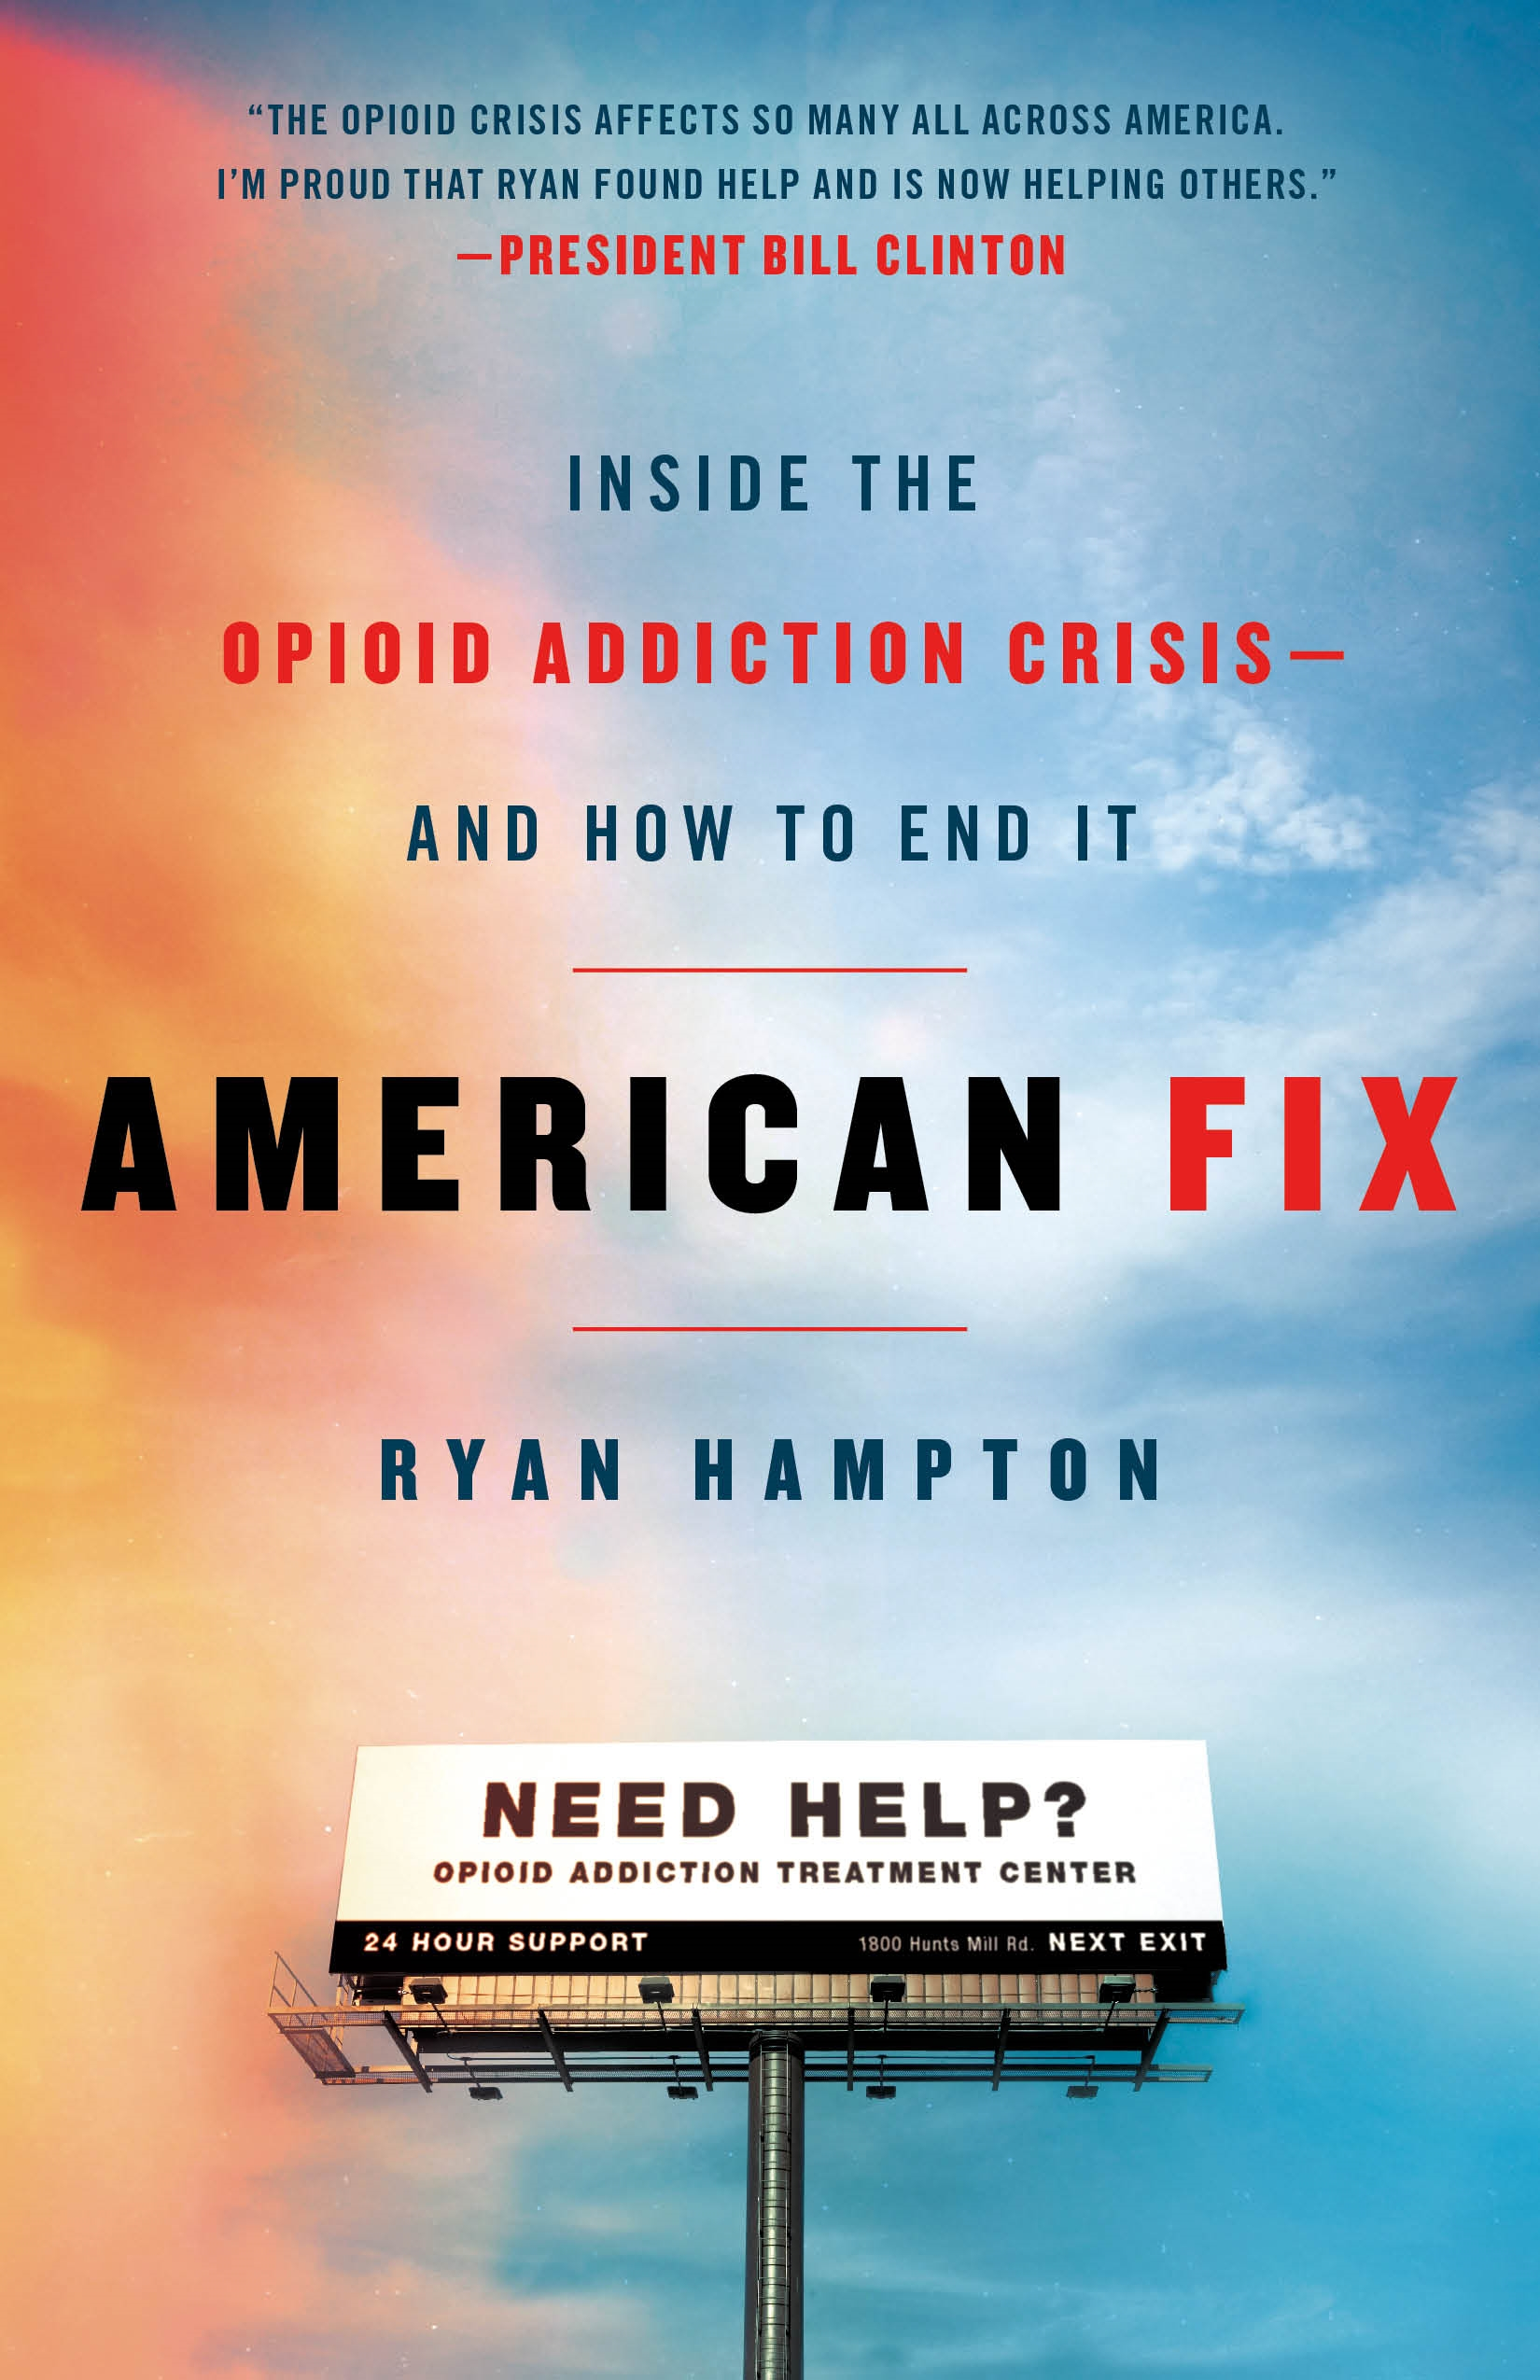 American Fix Inside the Opioid Addiction Crisis - and How to End It